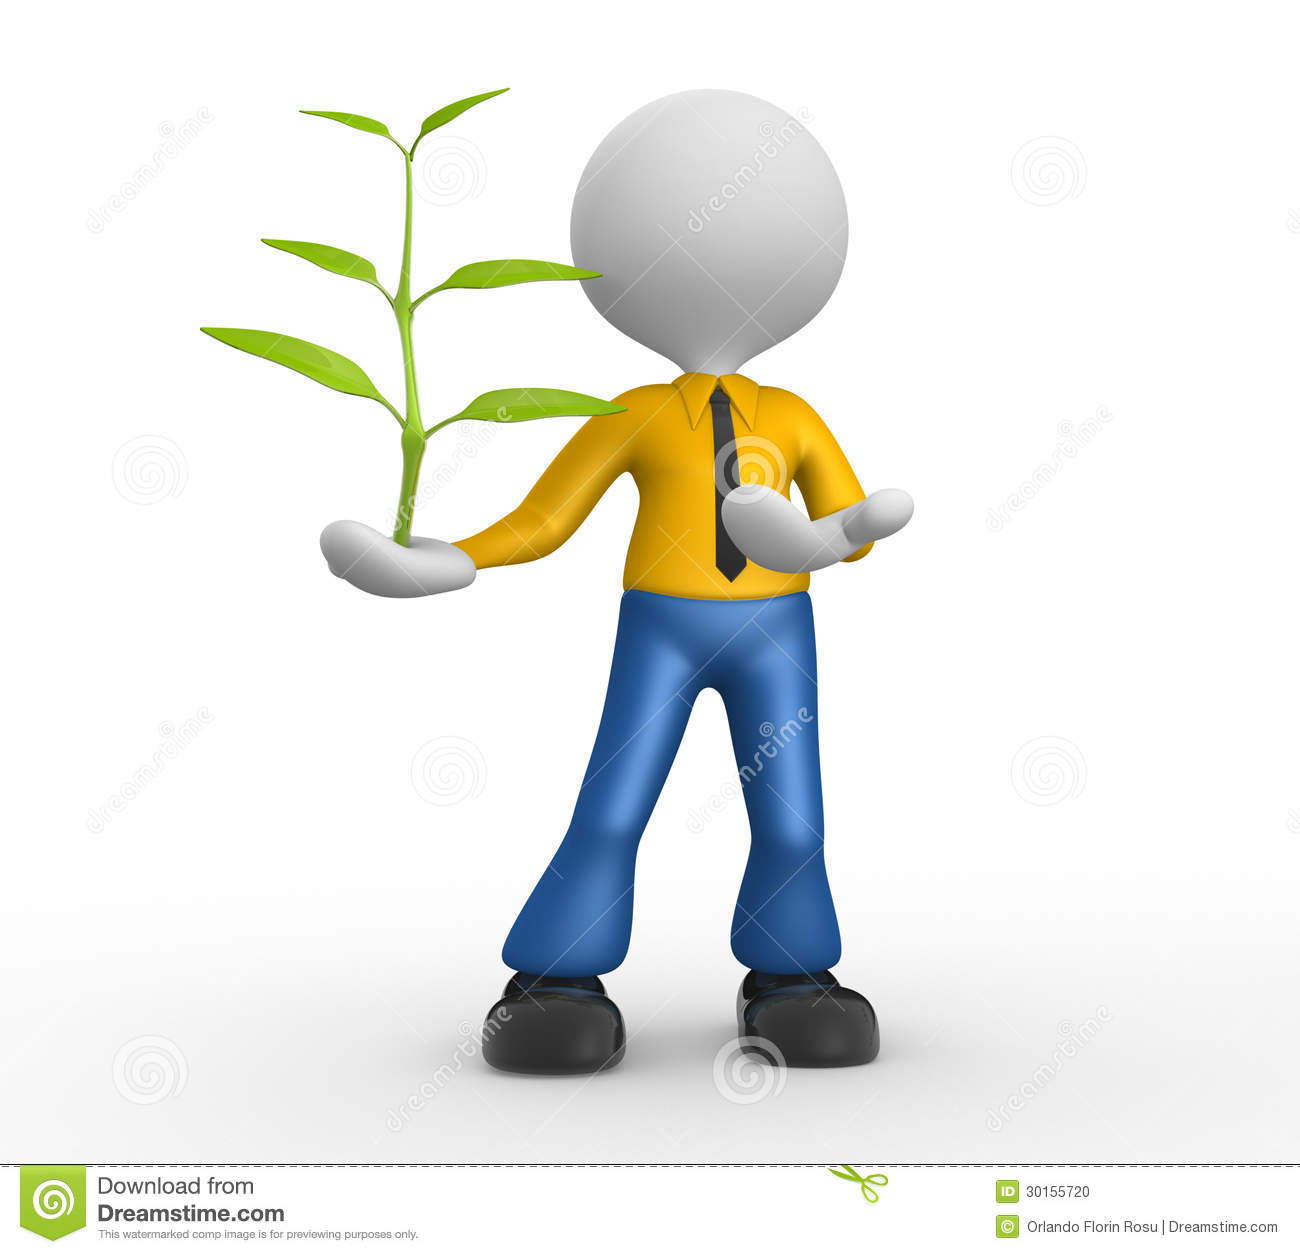 Plant Stock Illustration. Image Of Growth, Abstract